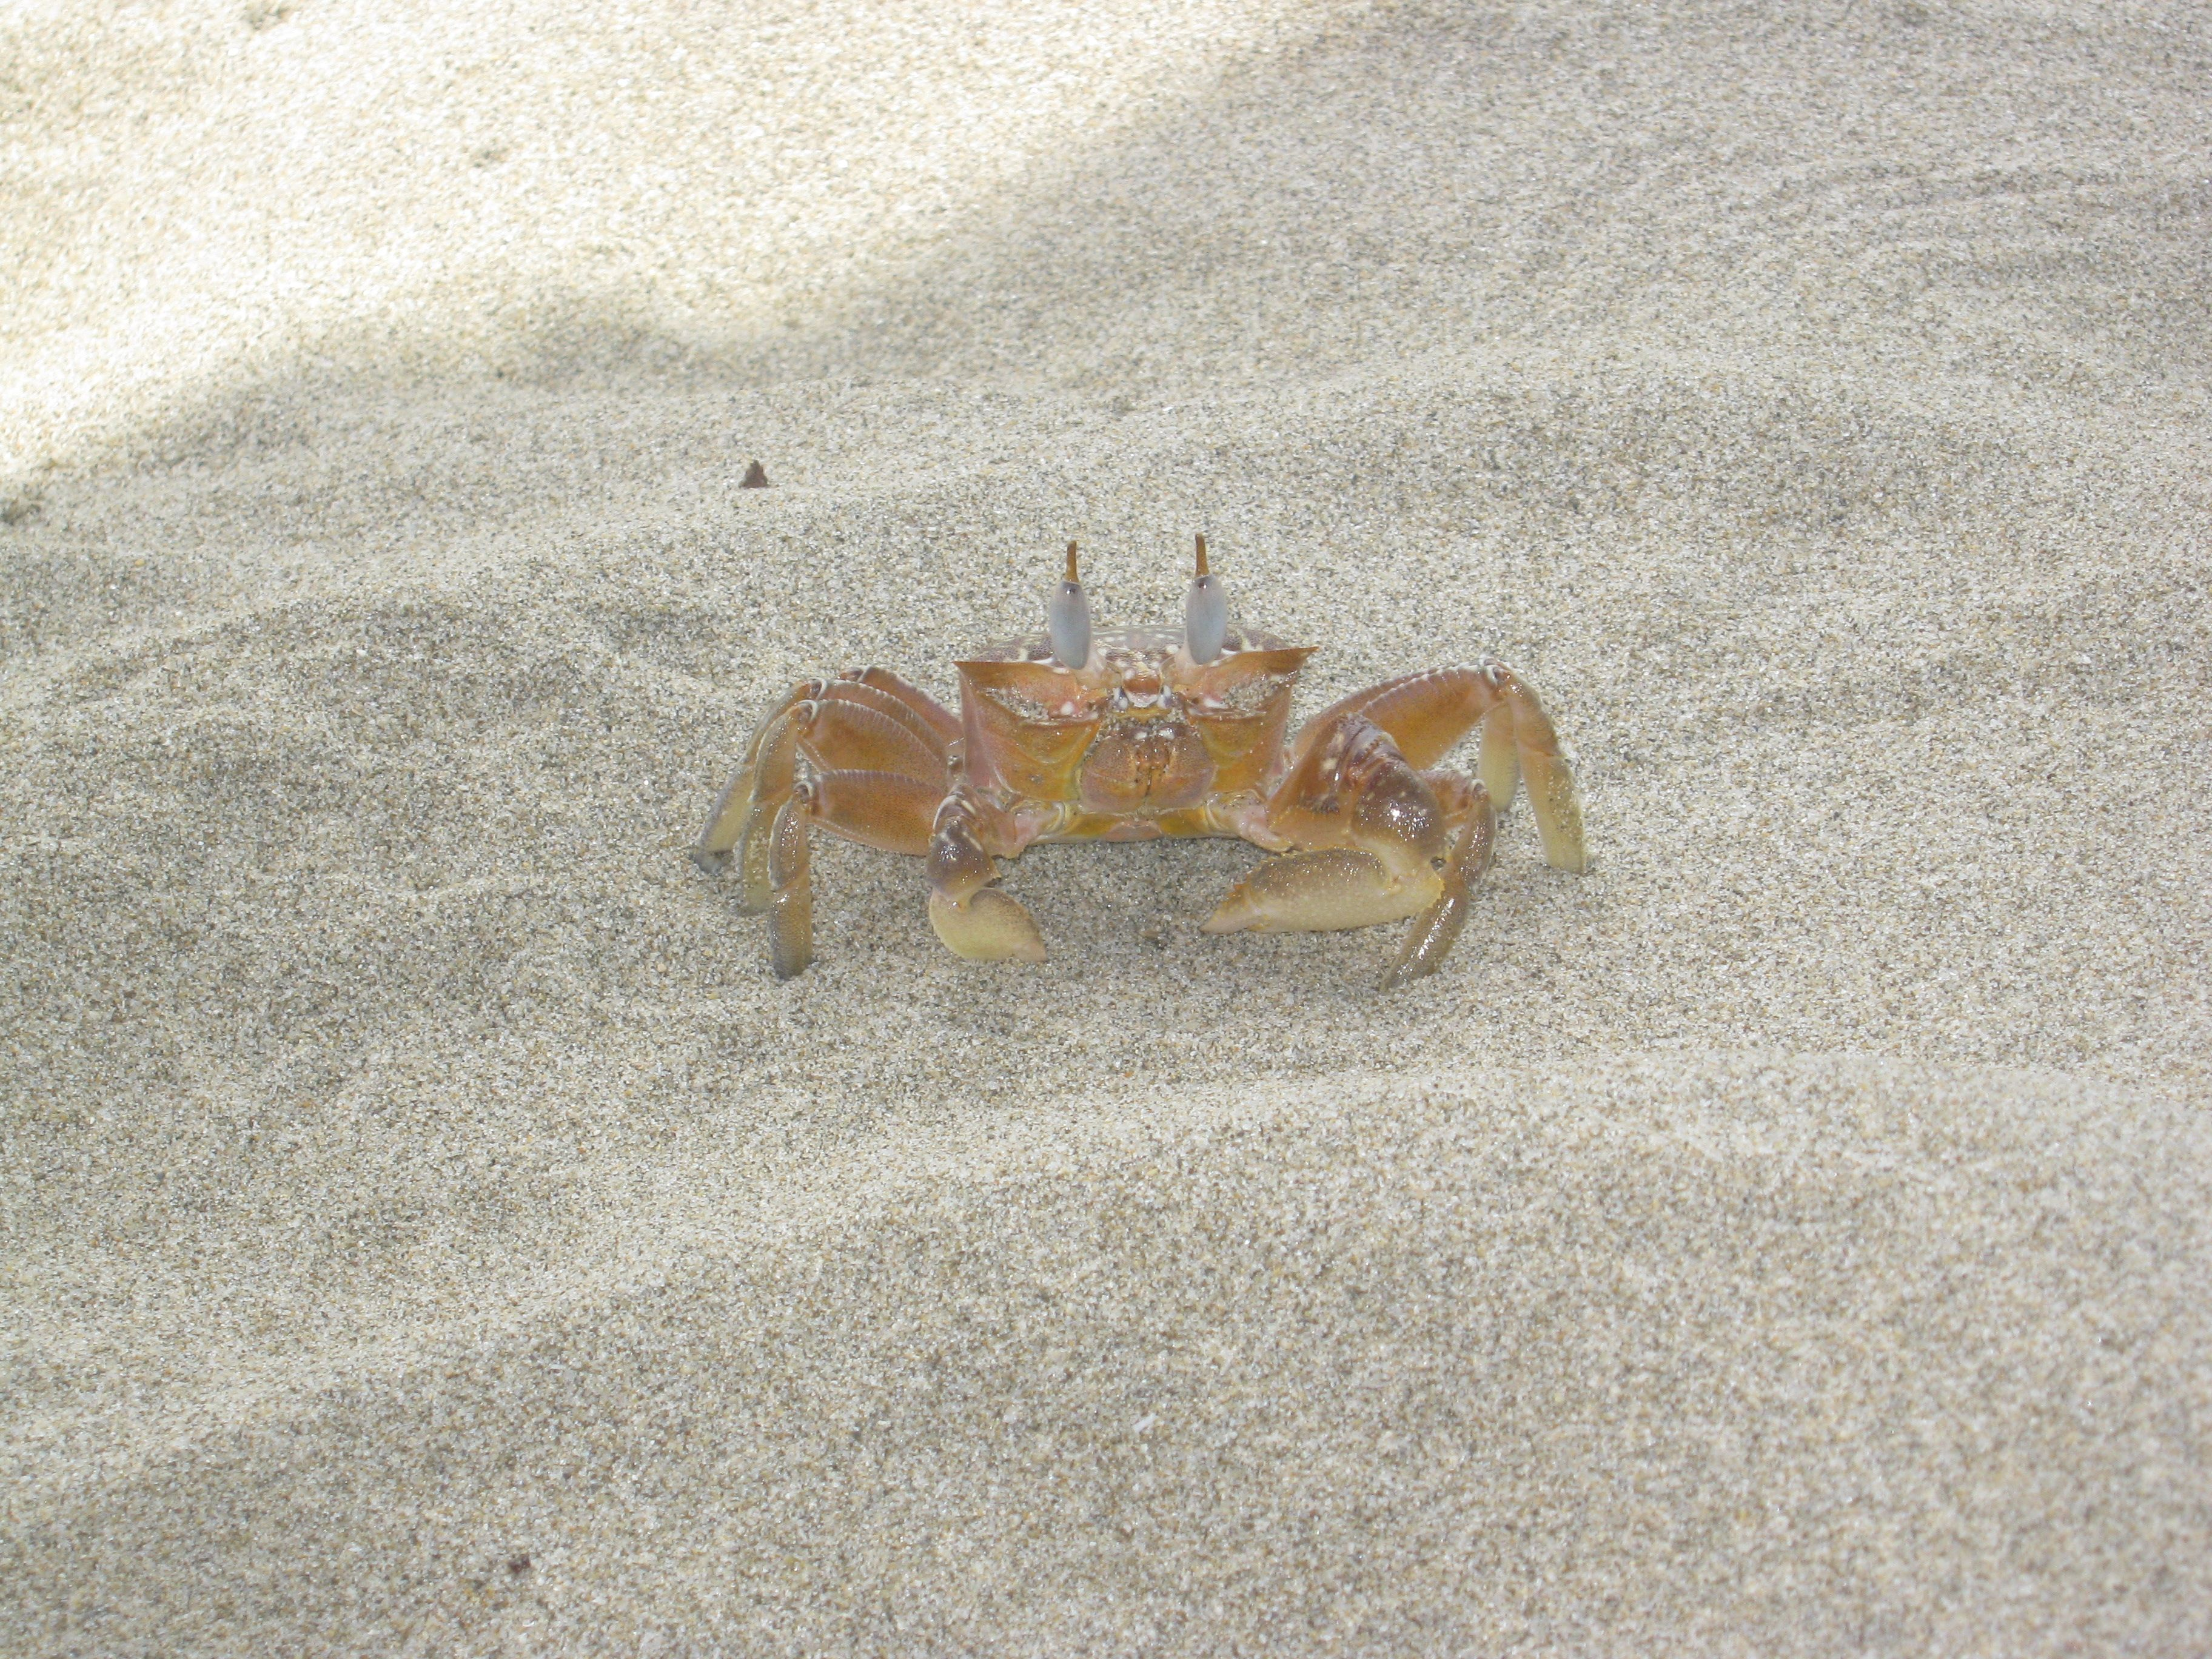 little crab .. O.O